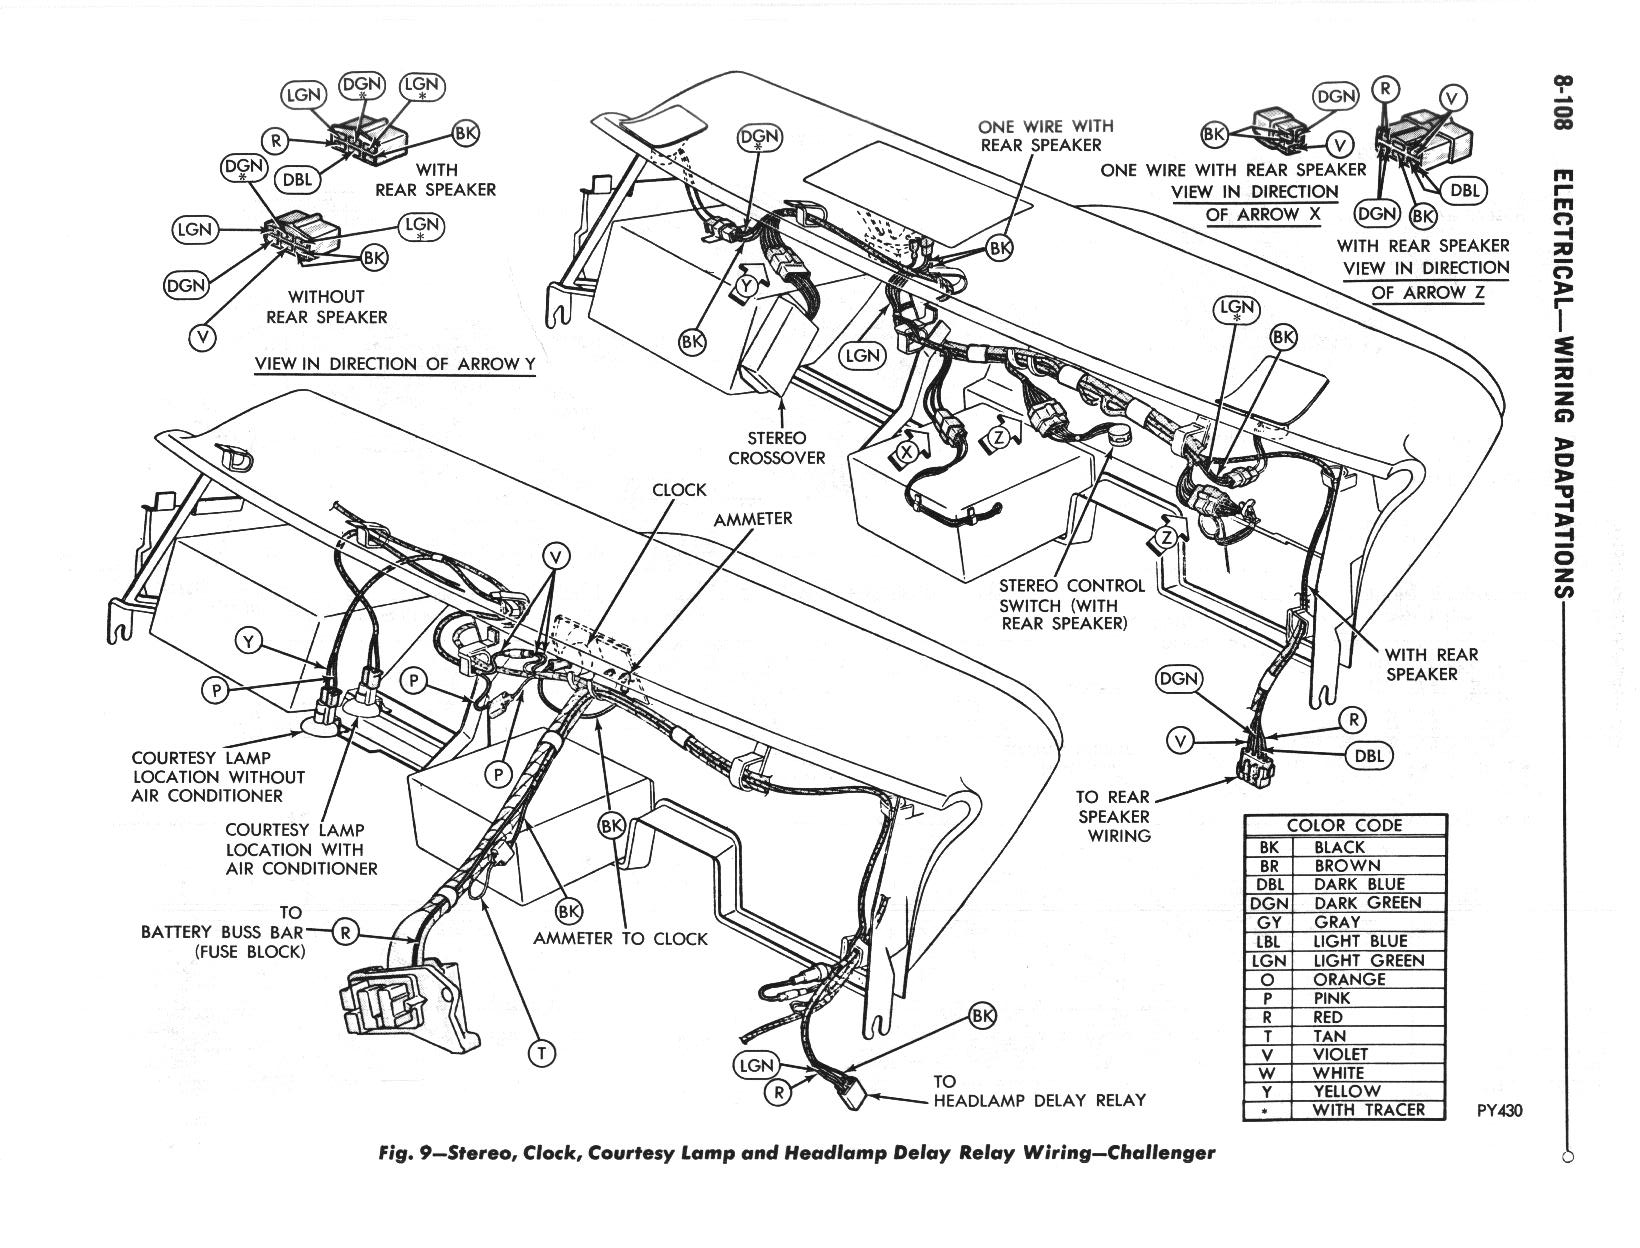 1970 Challenger Wiring Diagrams • The Dodge Challenger